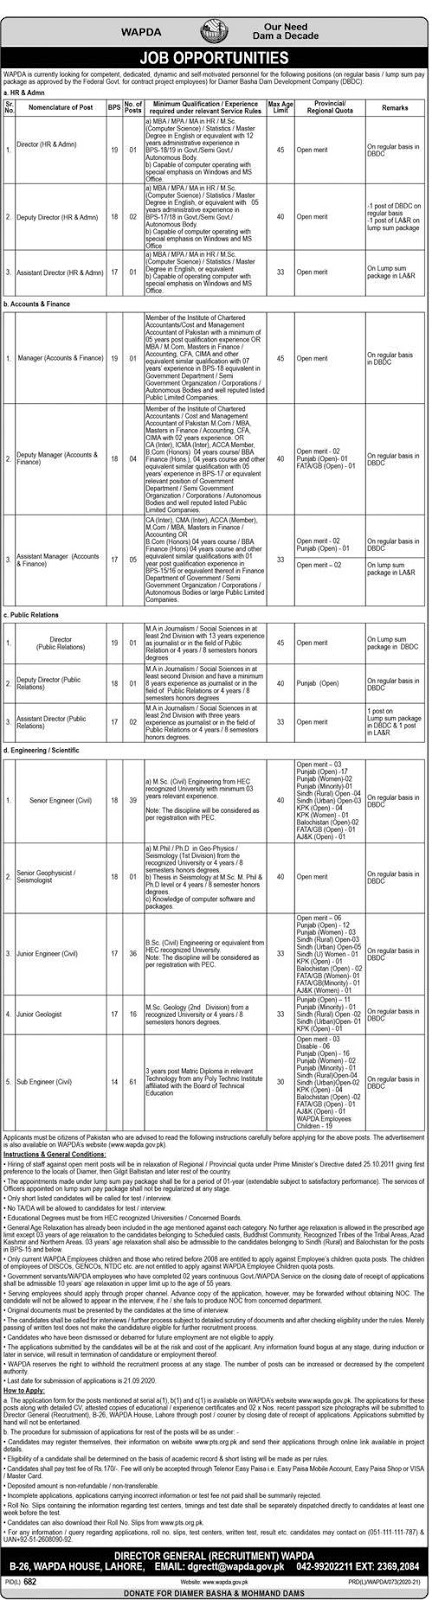 171 Positions of Water and Power Development Authority WAPDA Jobs 2020